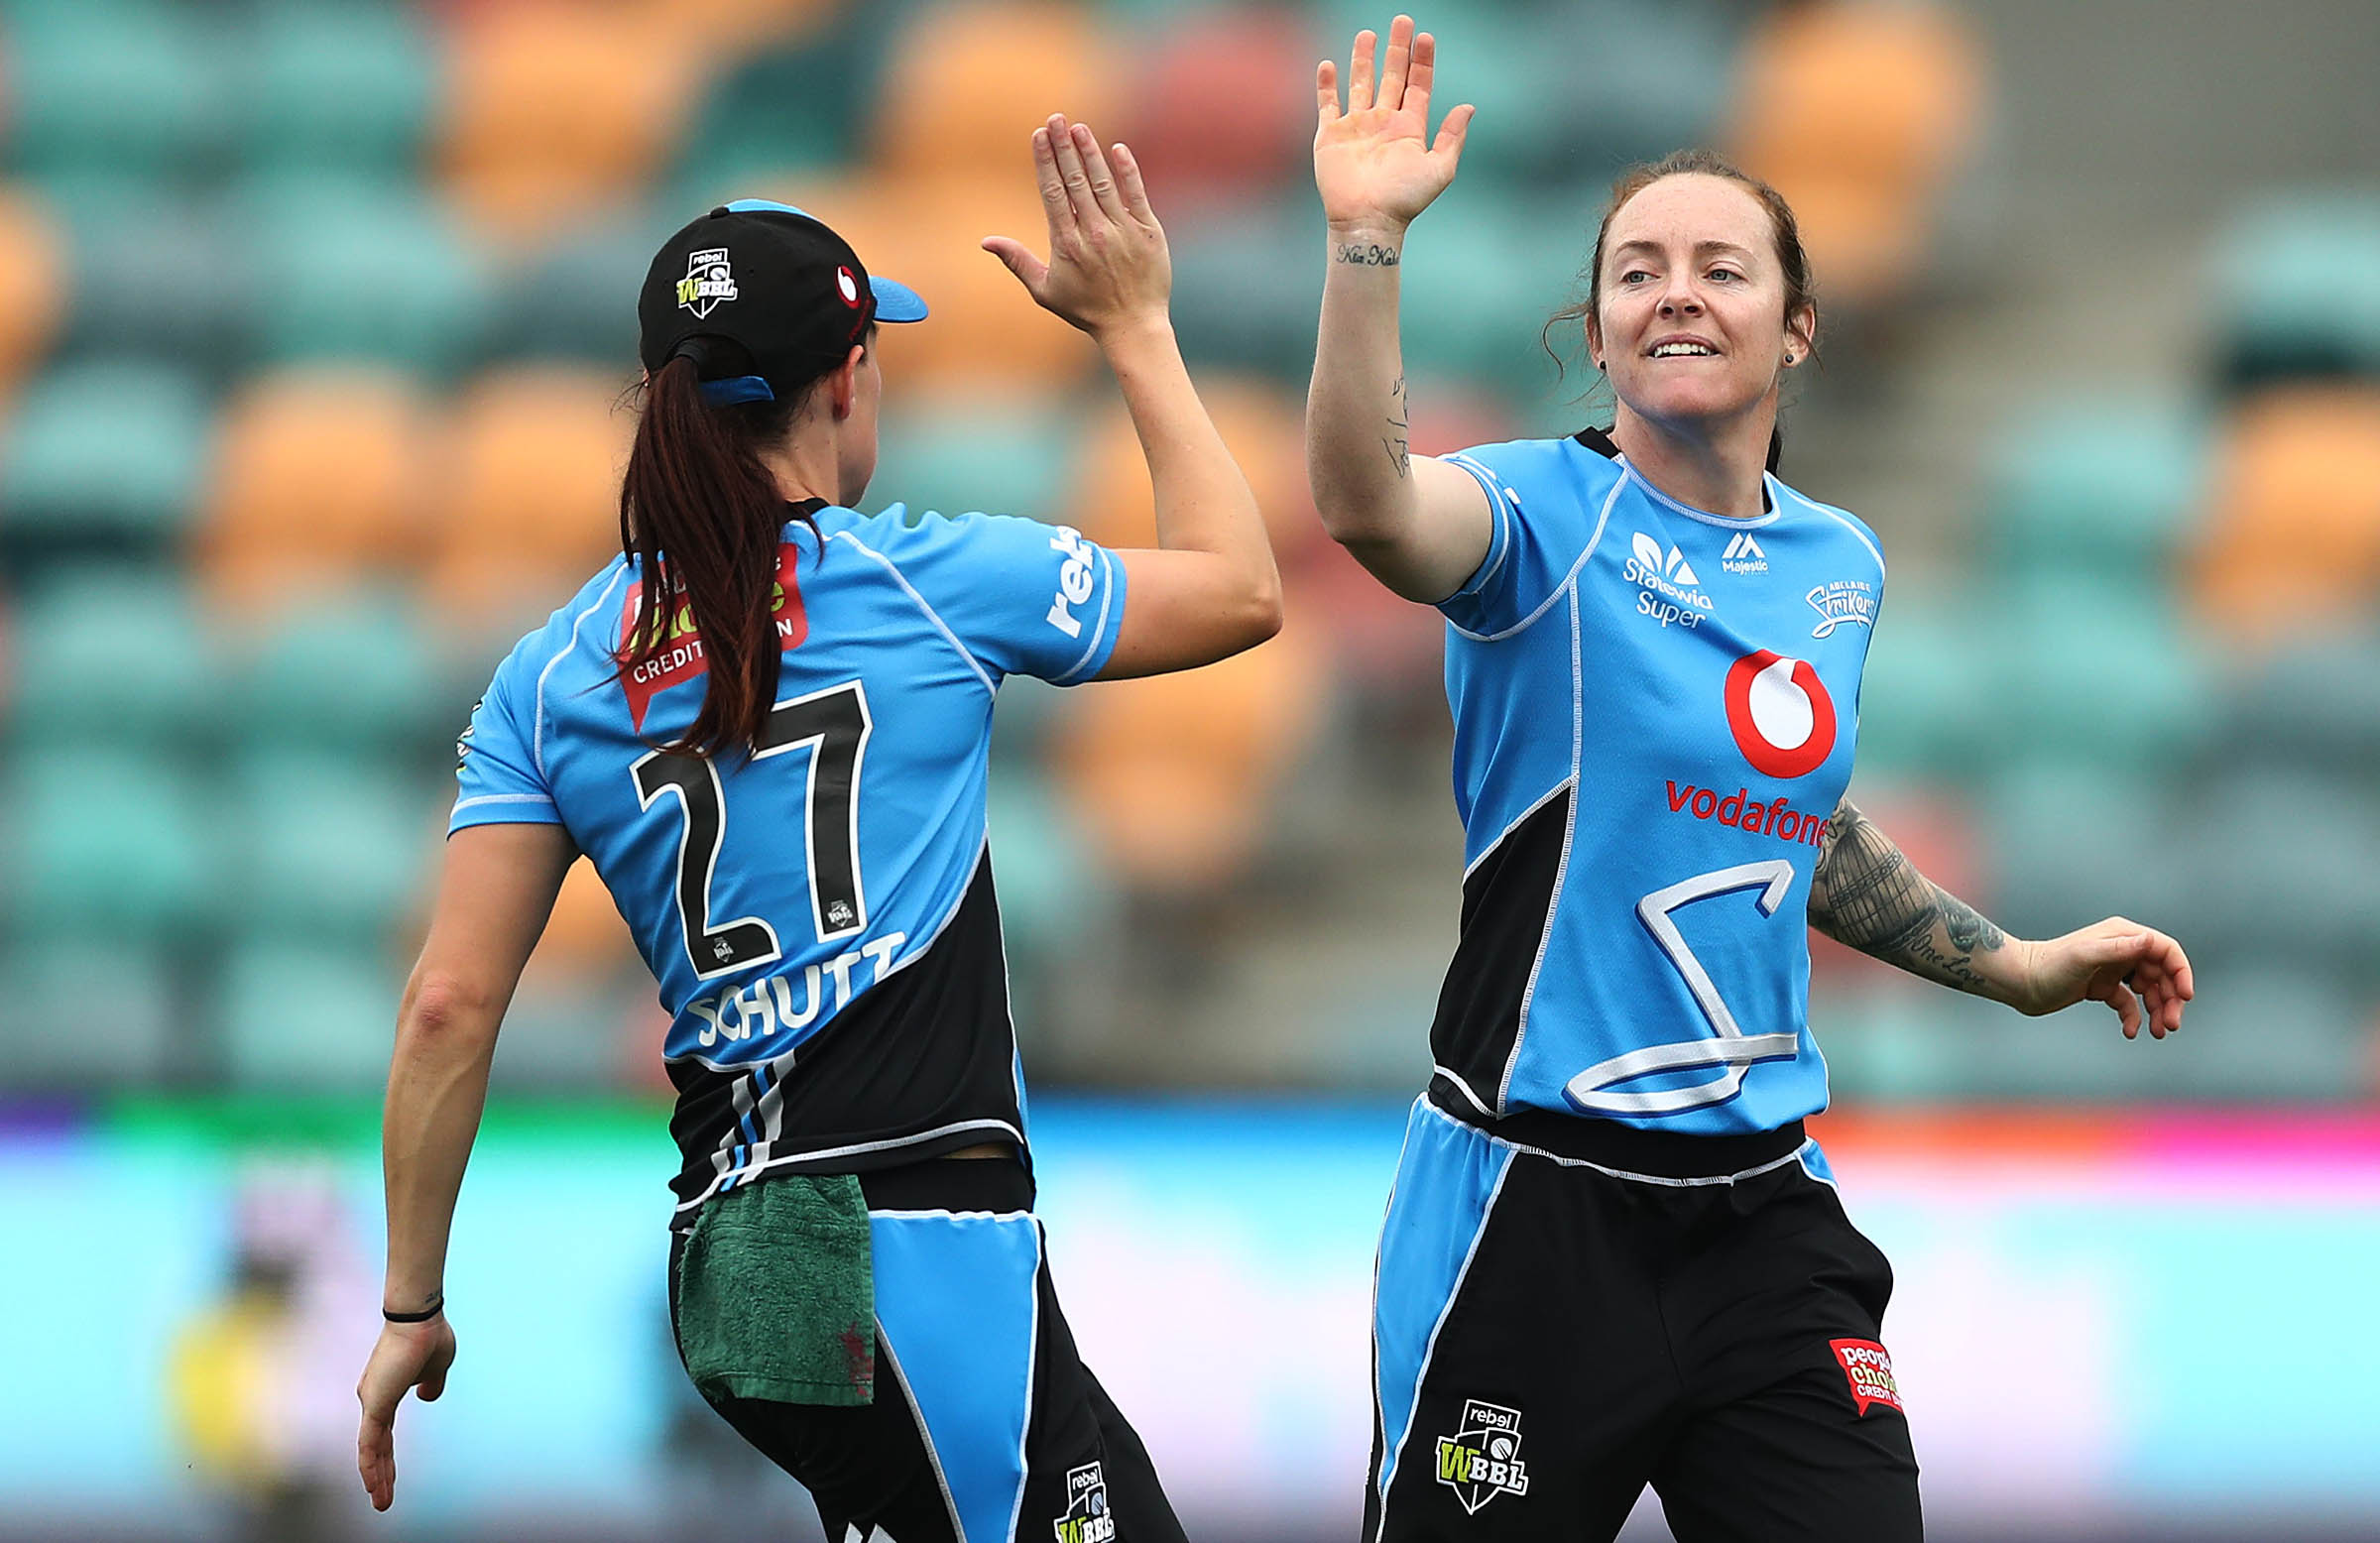 Cady will again play alongside Schutt at the Strikers in WBBL|05 // Getty